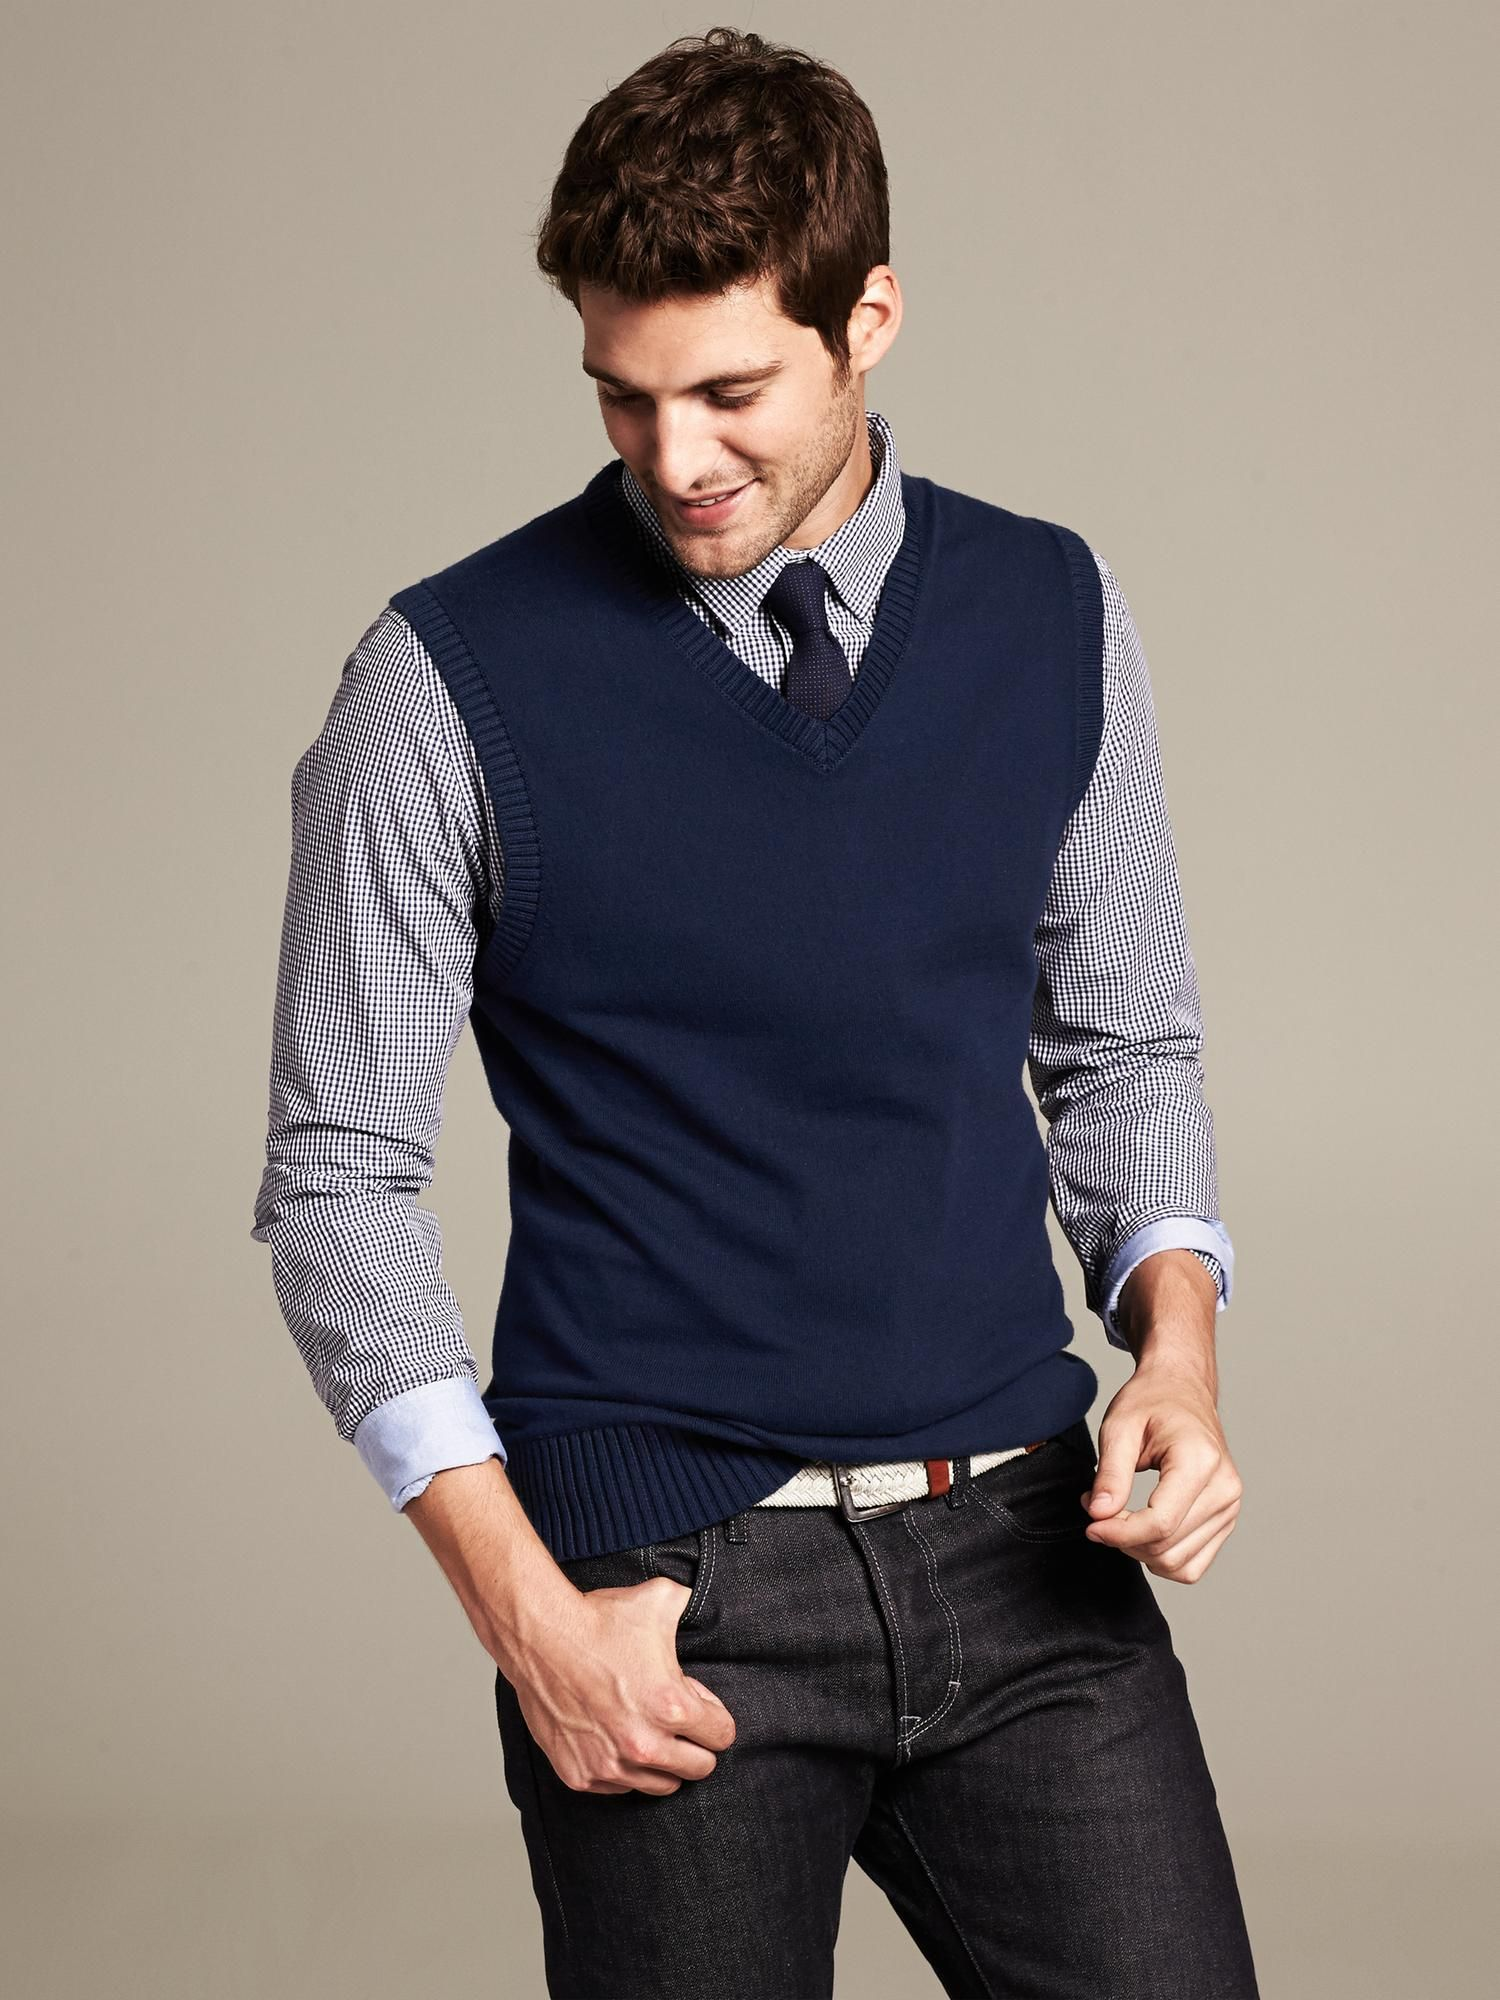 695346c222 Buy Banana Republic Men's Blue Classic Sweater Vest Preppy Navy. Similar  products also available. SALE now on!